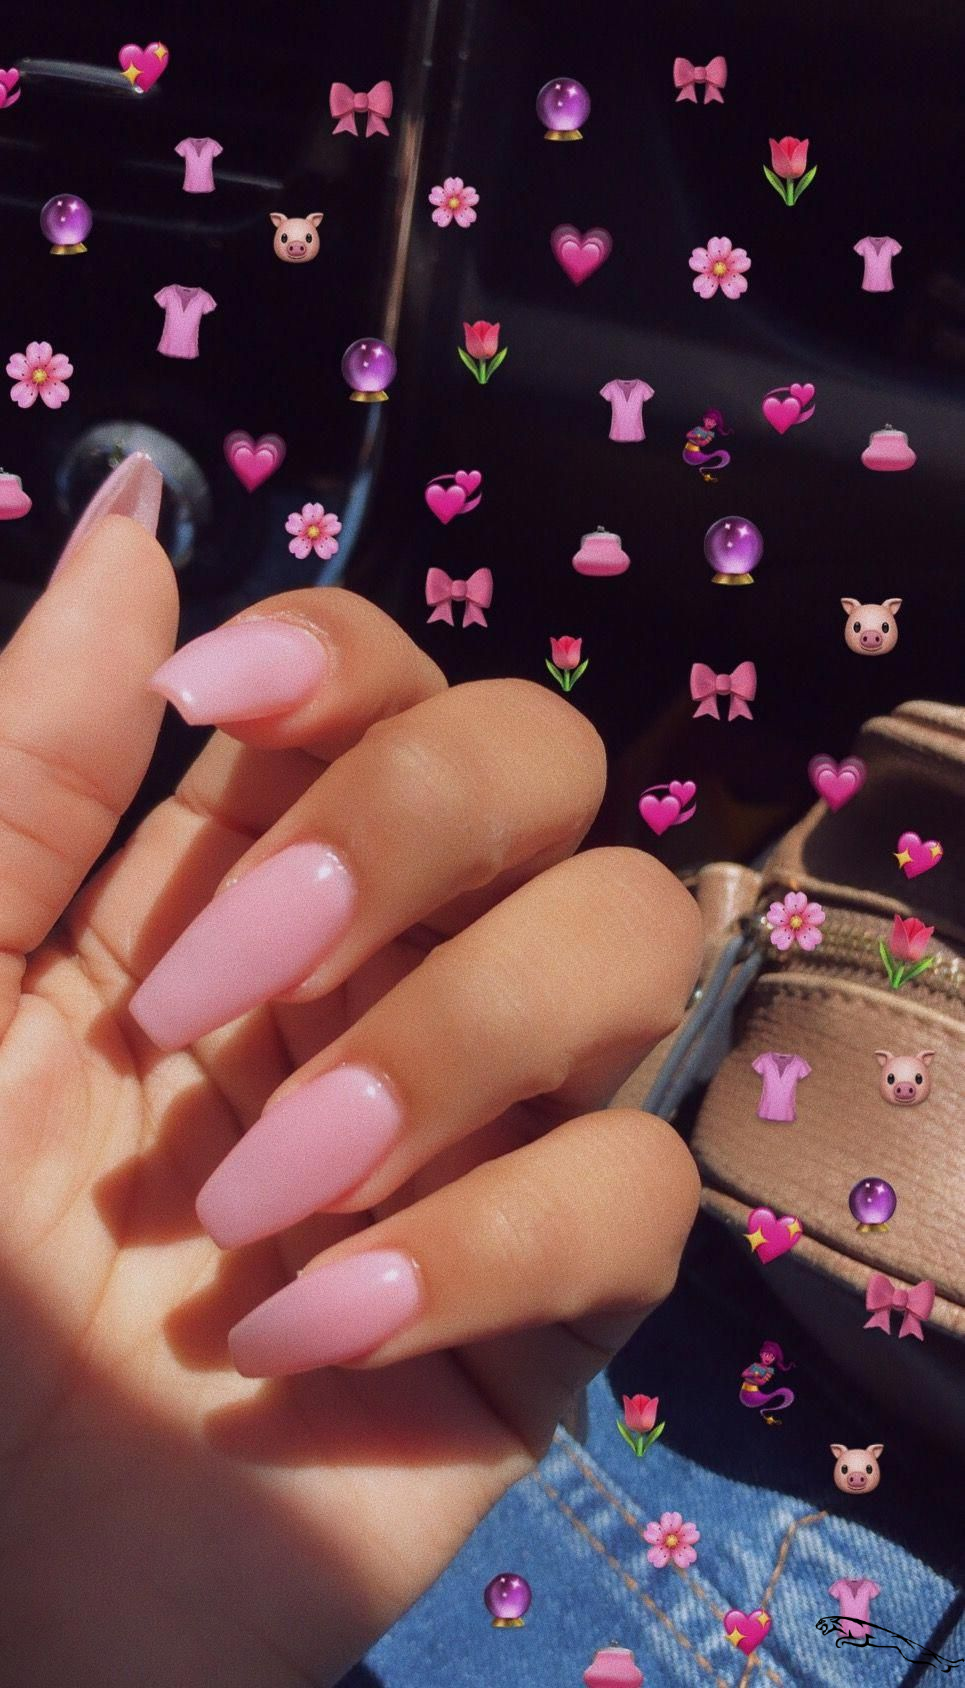 Pink #acrylic coffin nails. #cute nail #inspo for this summer. #AcrylicNails